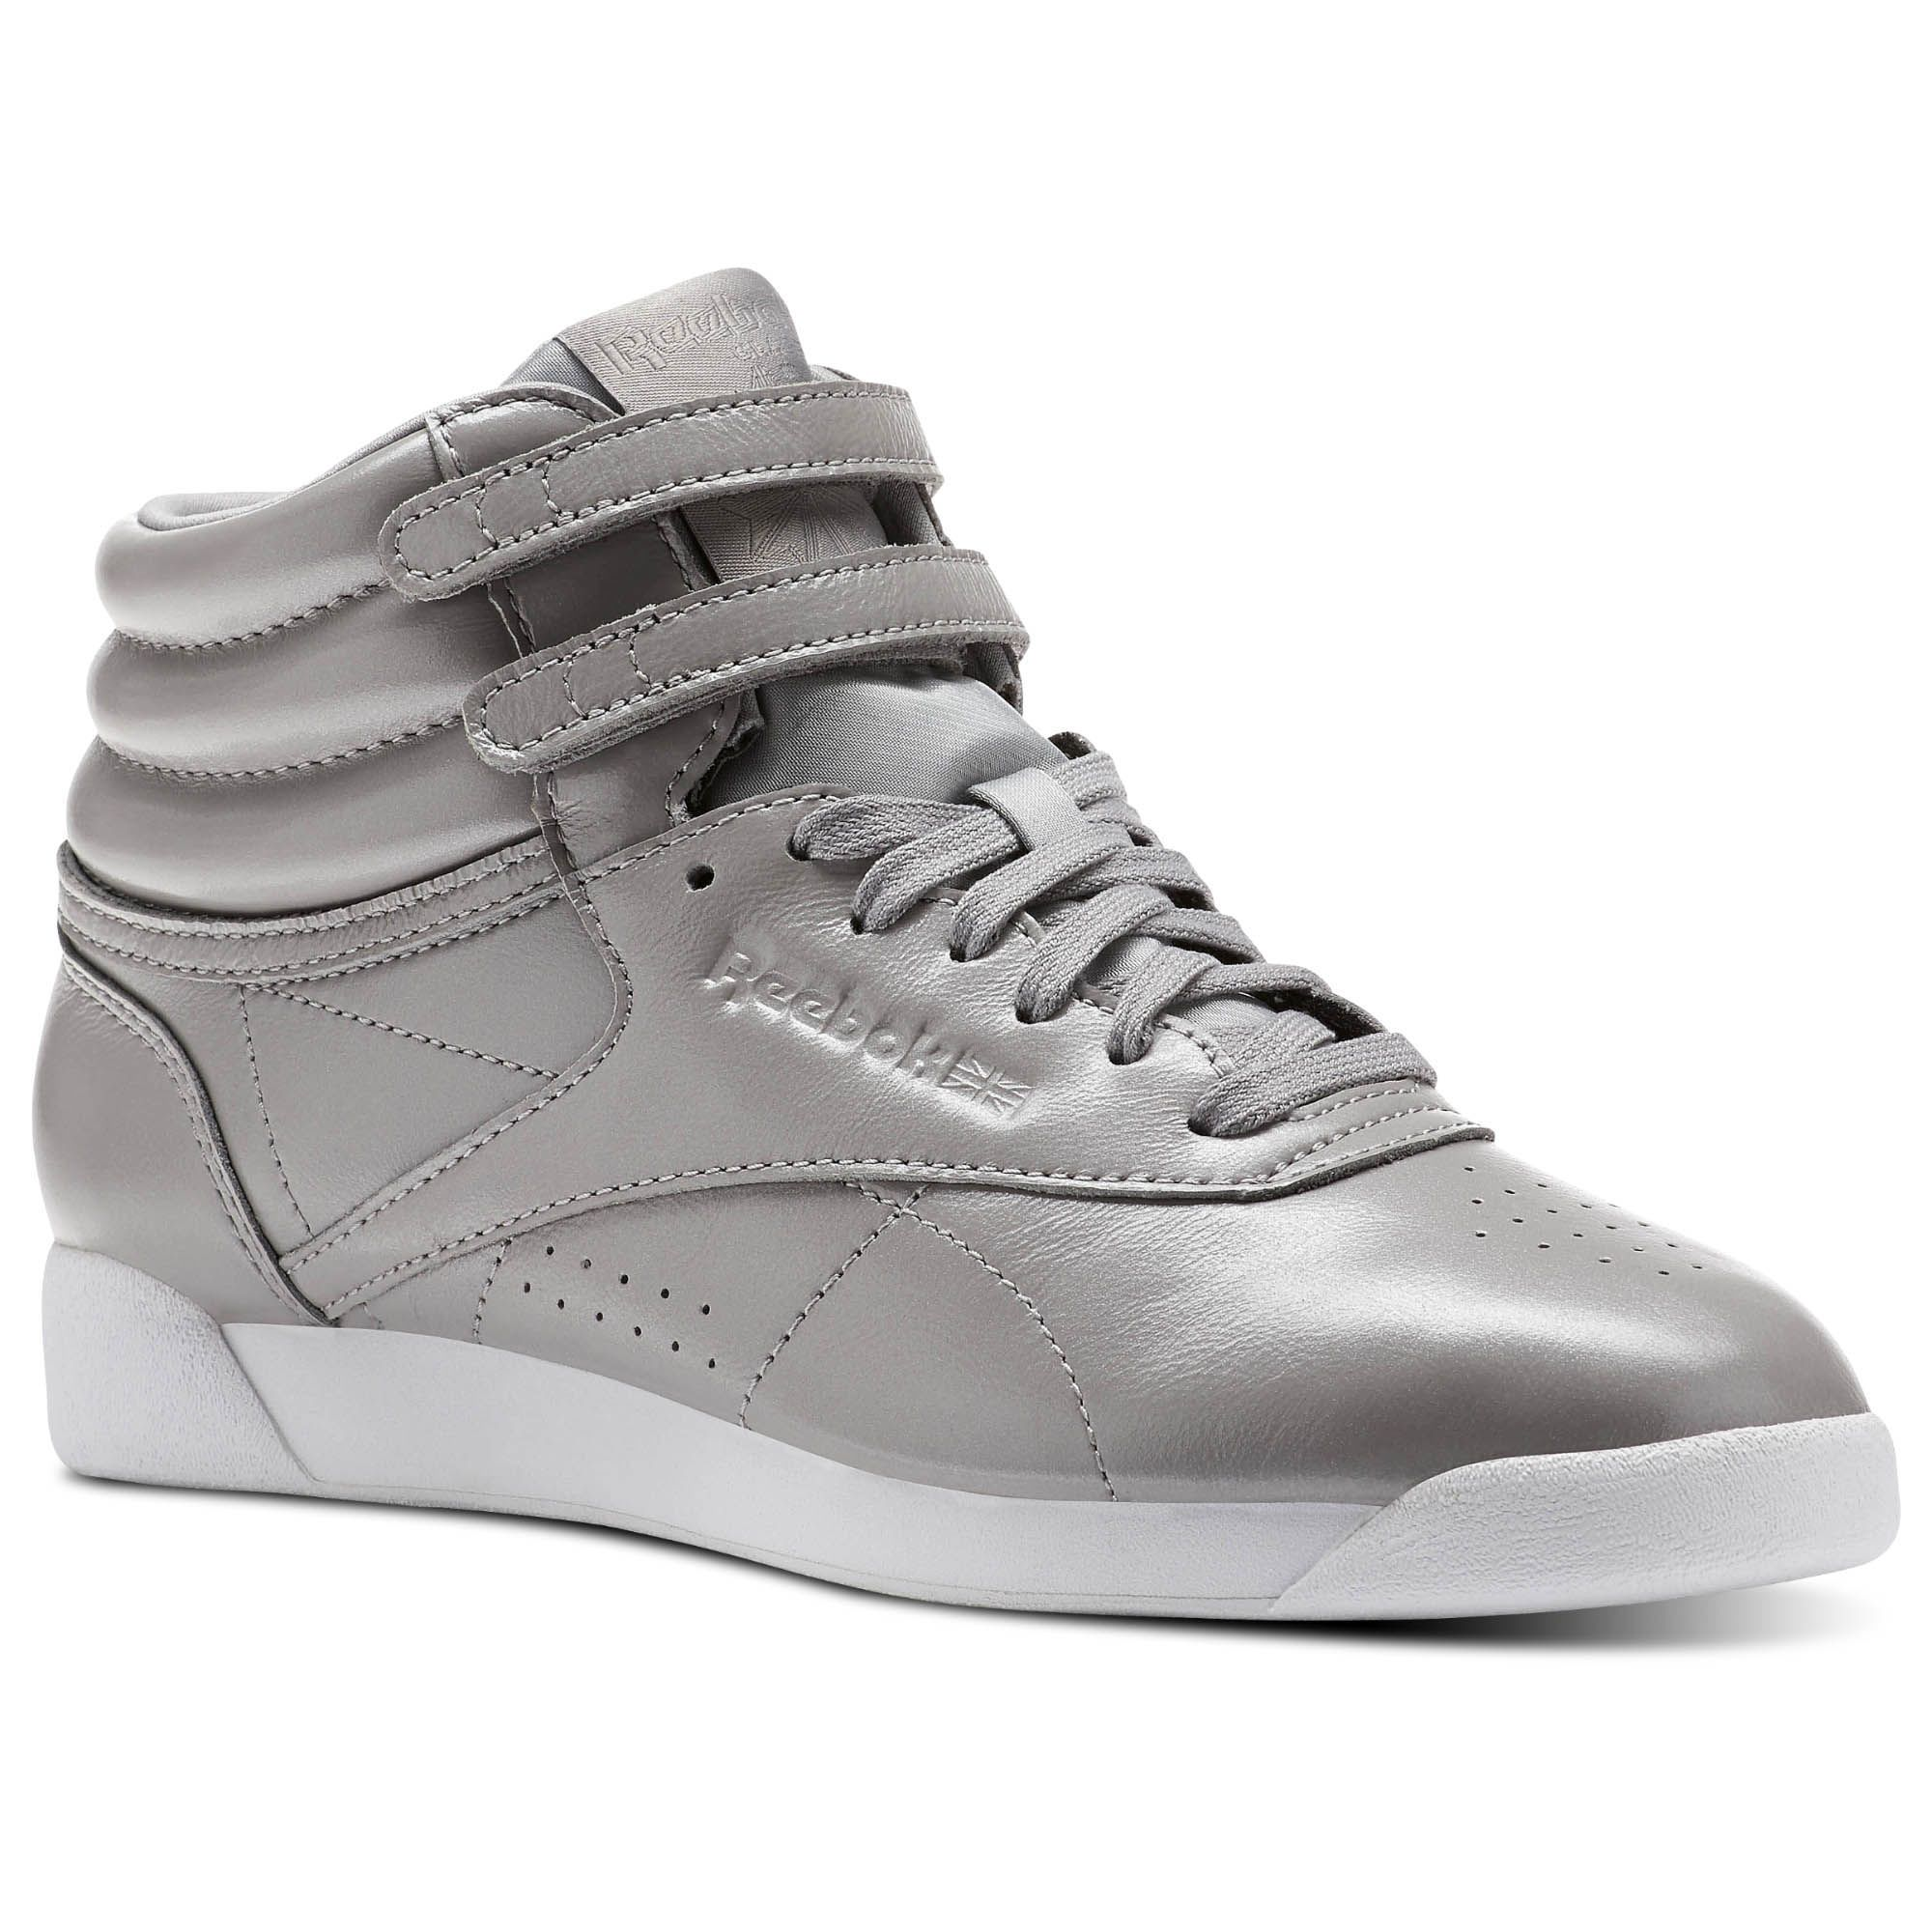 e4ec913a9aa Shop for Freestyle Hi Iridescent - Grey at reebok.com. See all the styles  and colors of Freestyle Hi Iridescent - Grey at the official Reebok US  online ...